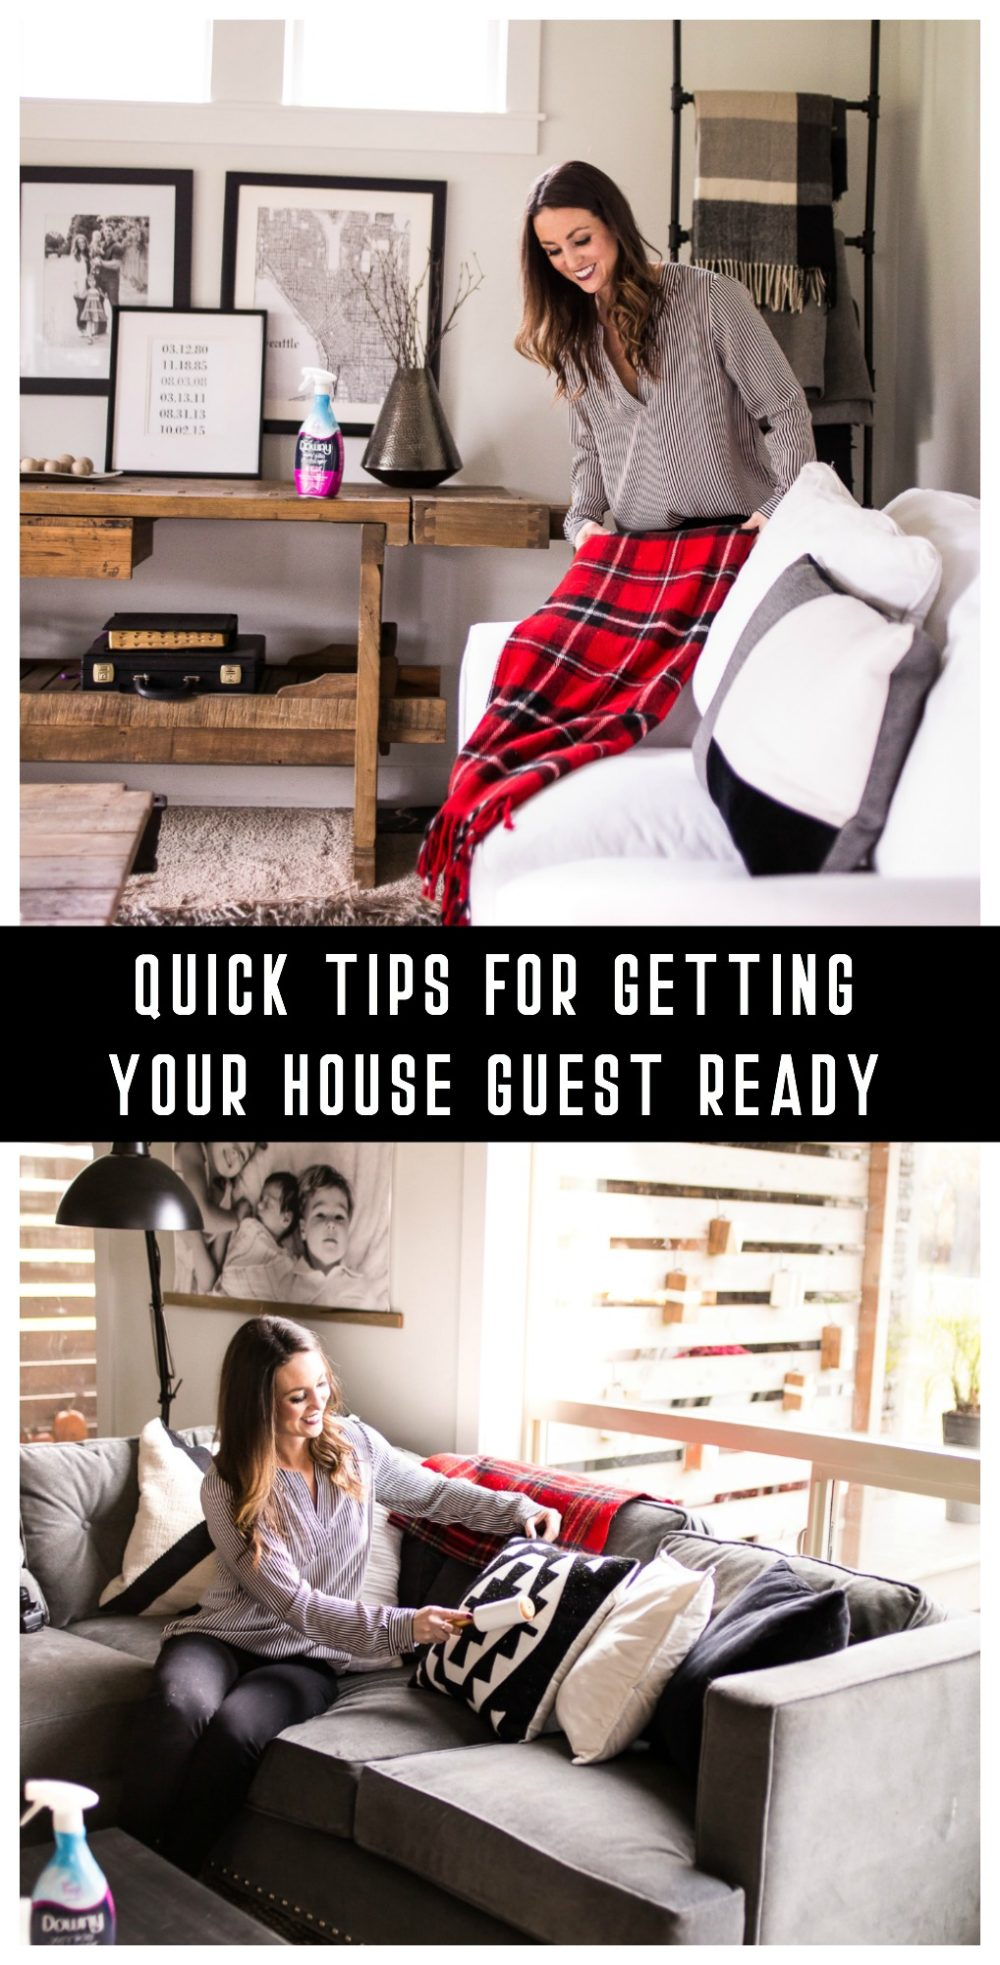 Getting ready for the holidays can be stressful. Here are quick tips for getting your house guest ready, simple ways to freshen up your home and you!